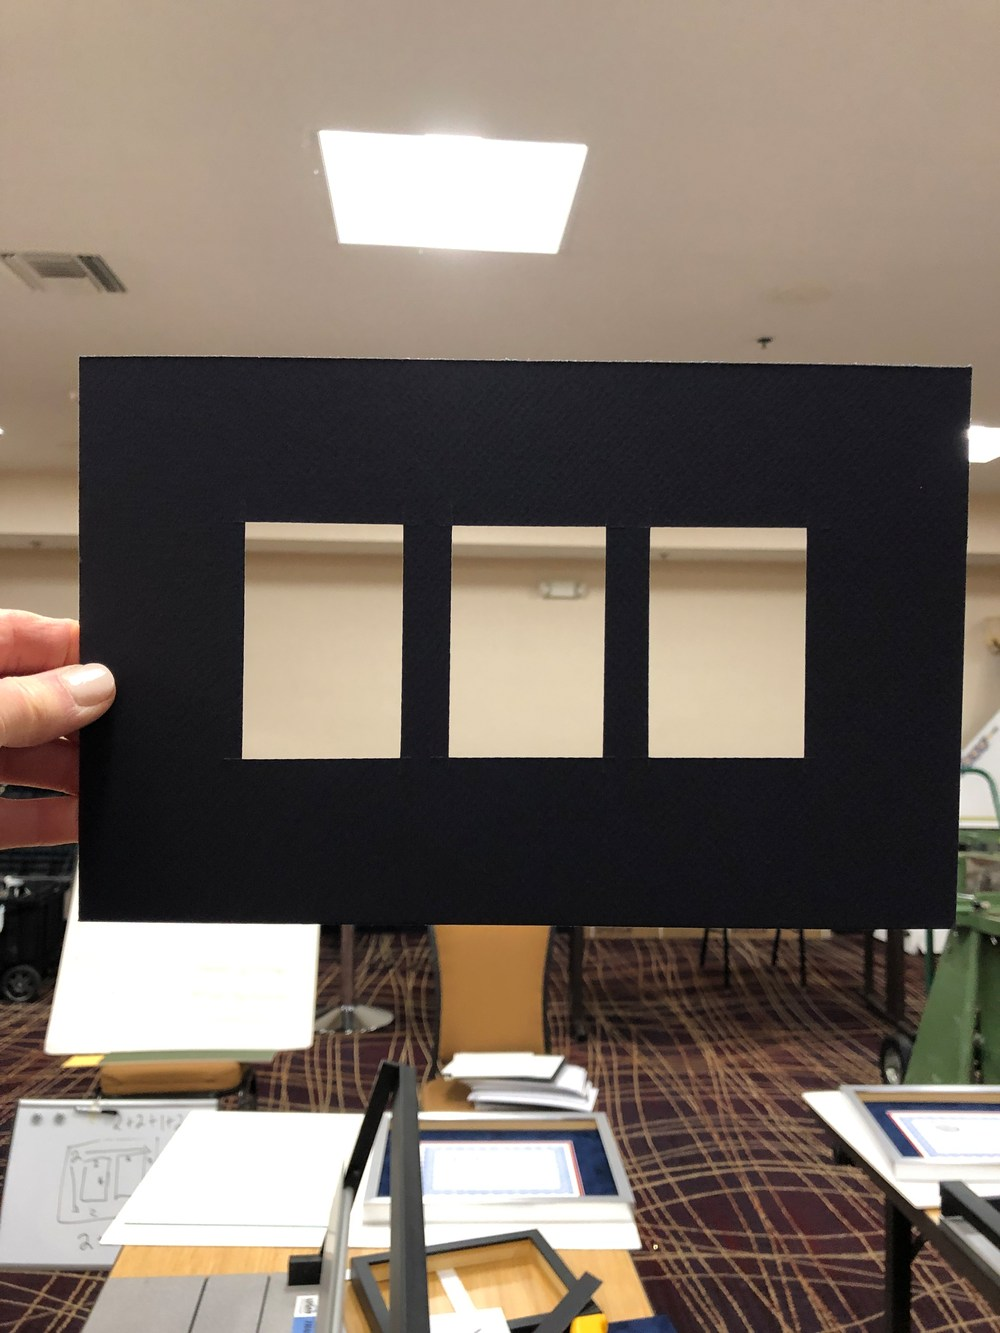 Learning to center 3 mat cuts at custom framing workshop